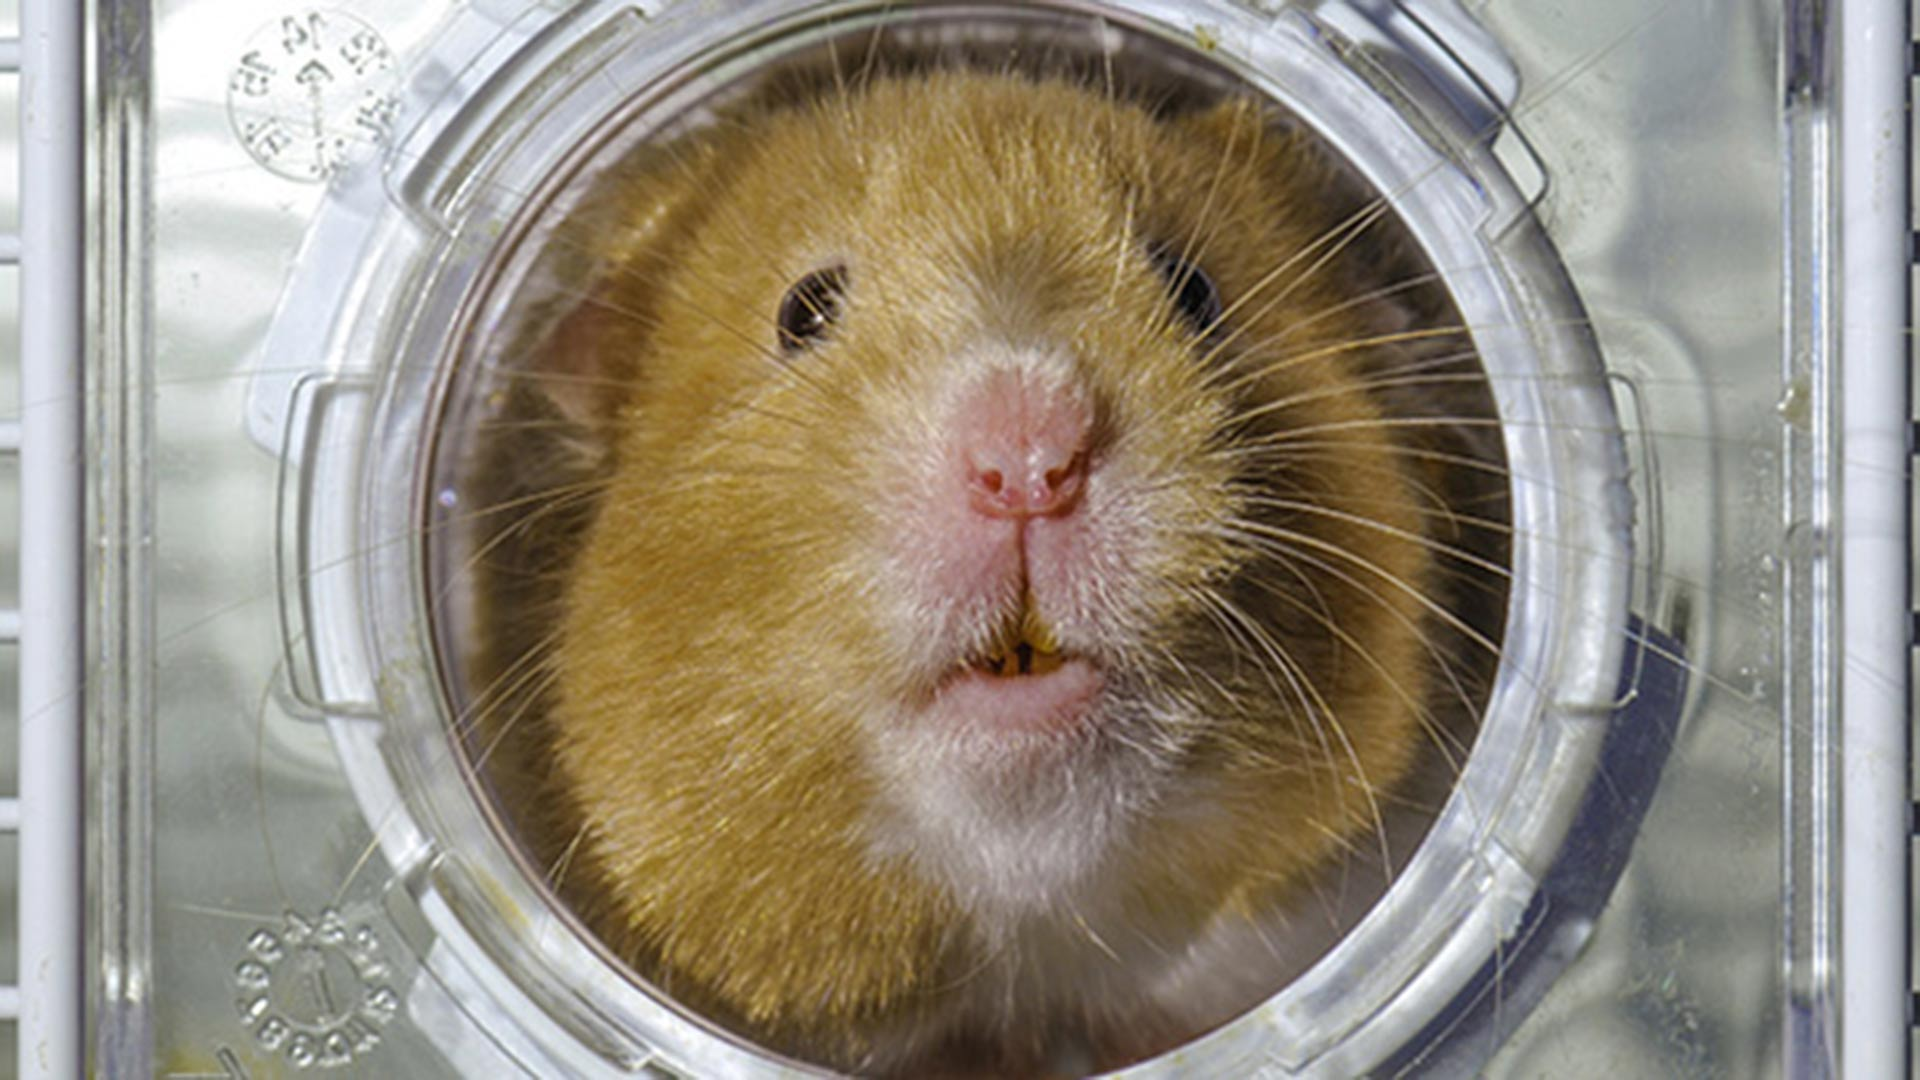 Golden hamster peering out of its play tunnel.